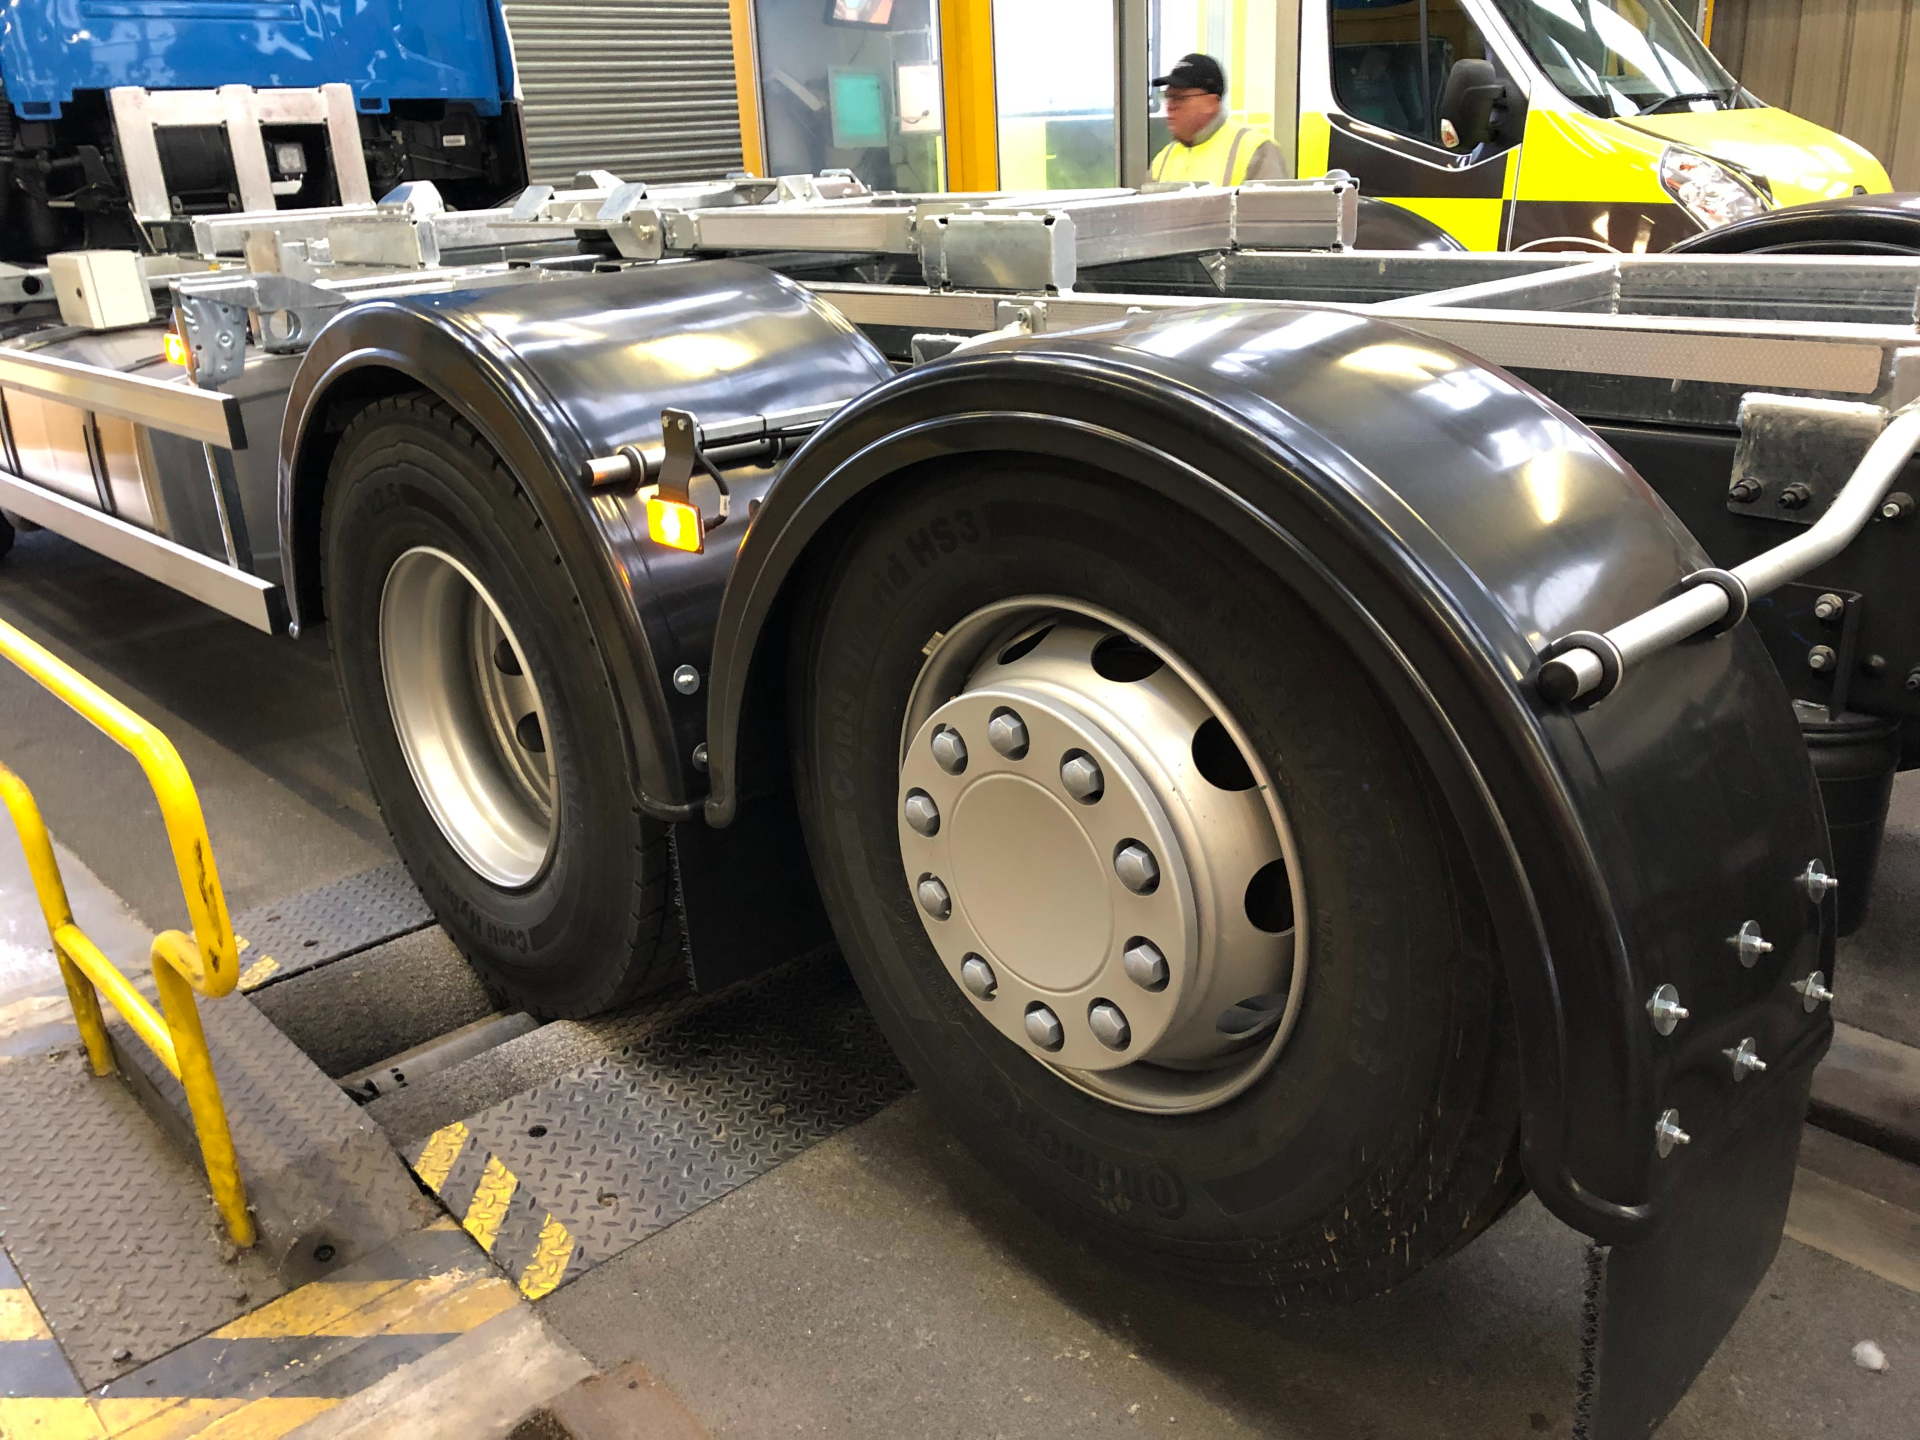 Lorry wheels being examined in ATF